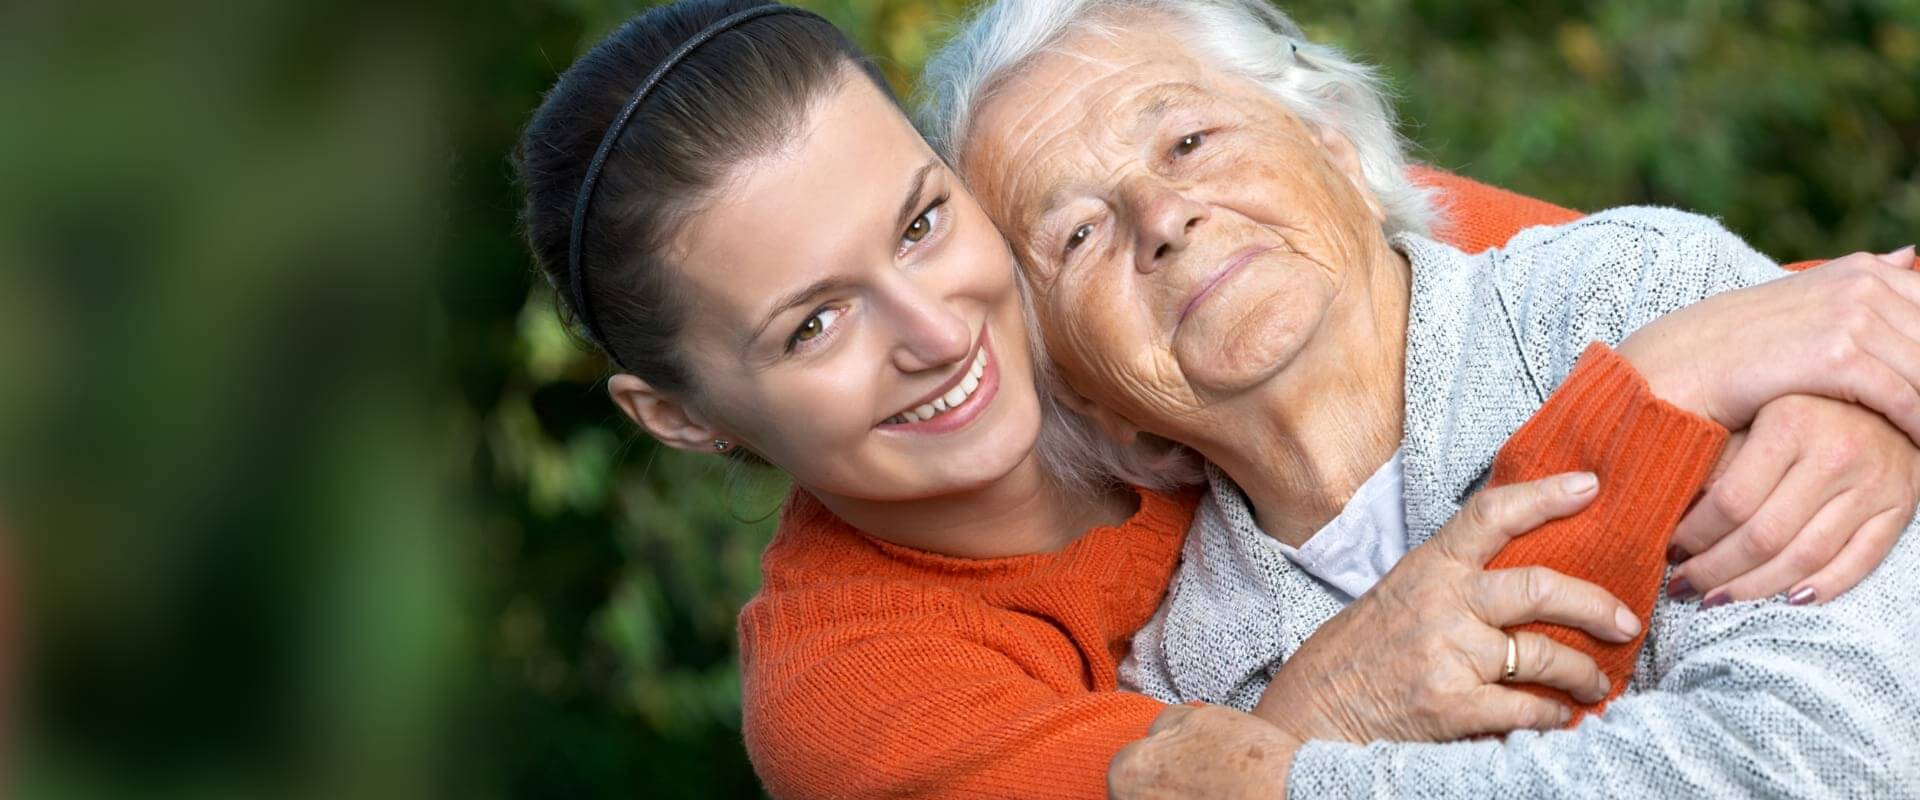 old woman smiling with a young woman